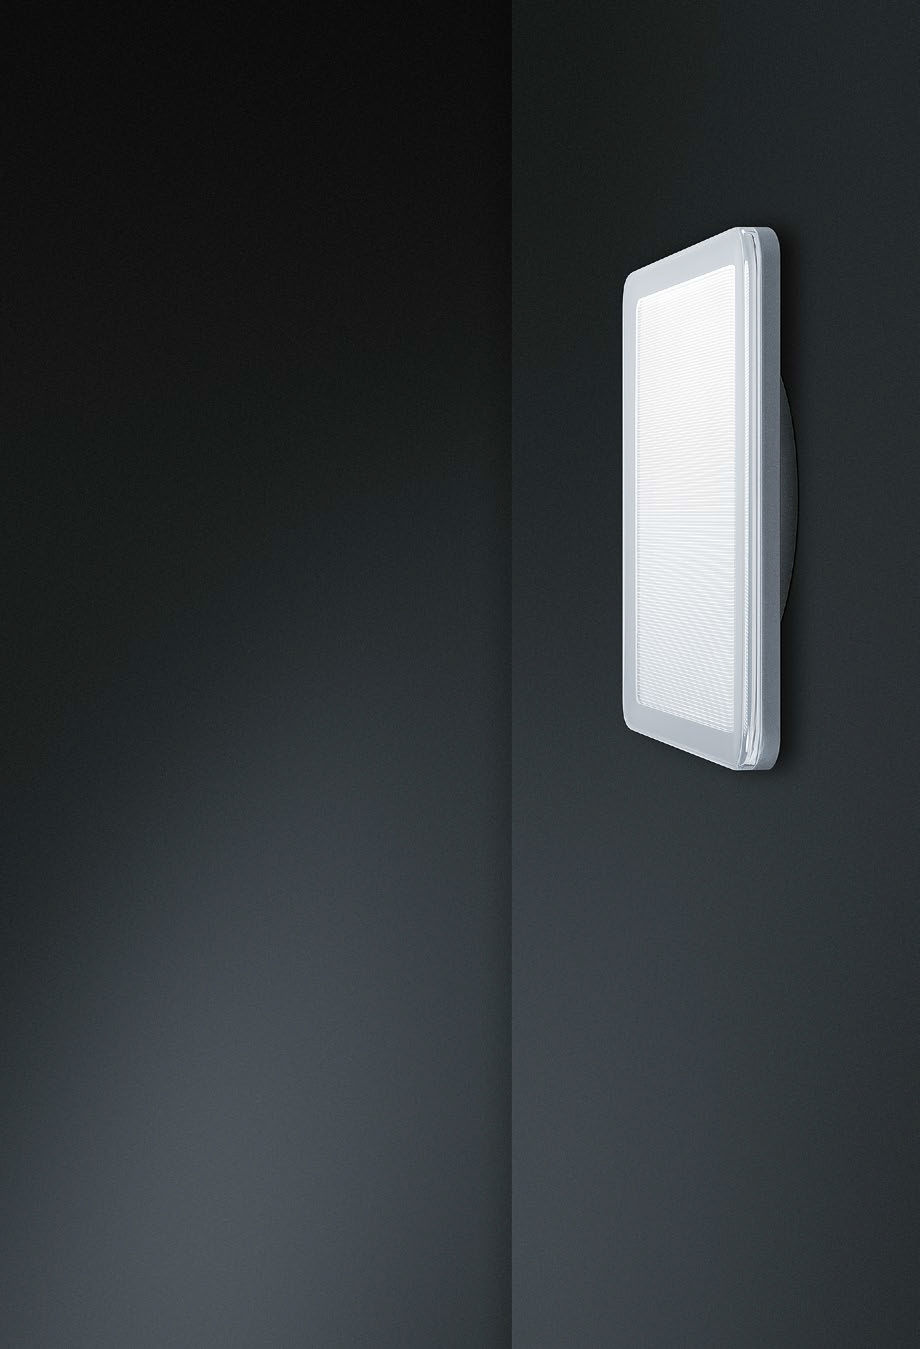 CAELA – as square or round wall- or ceiling-mounted luminaire